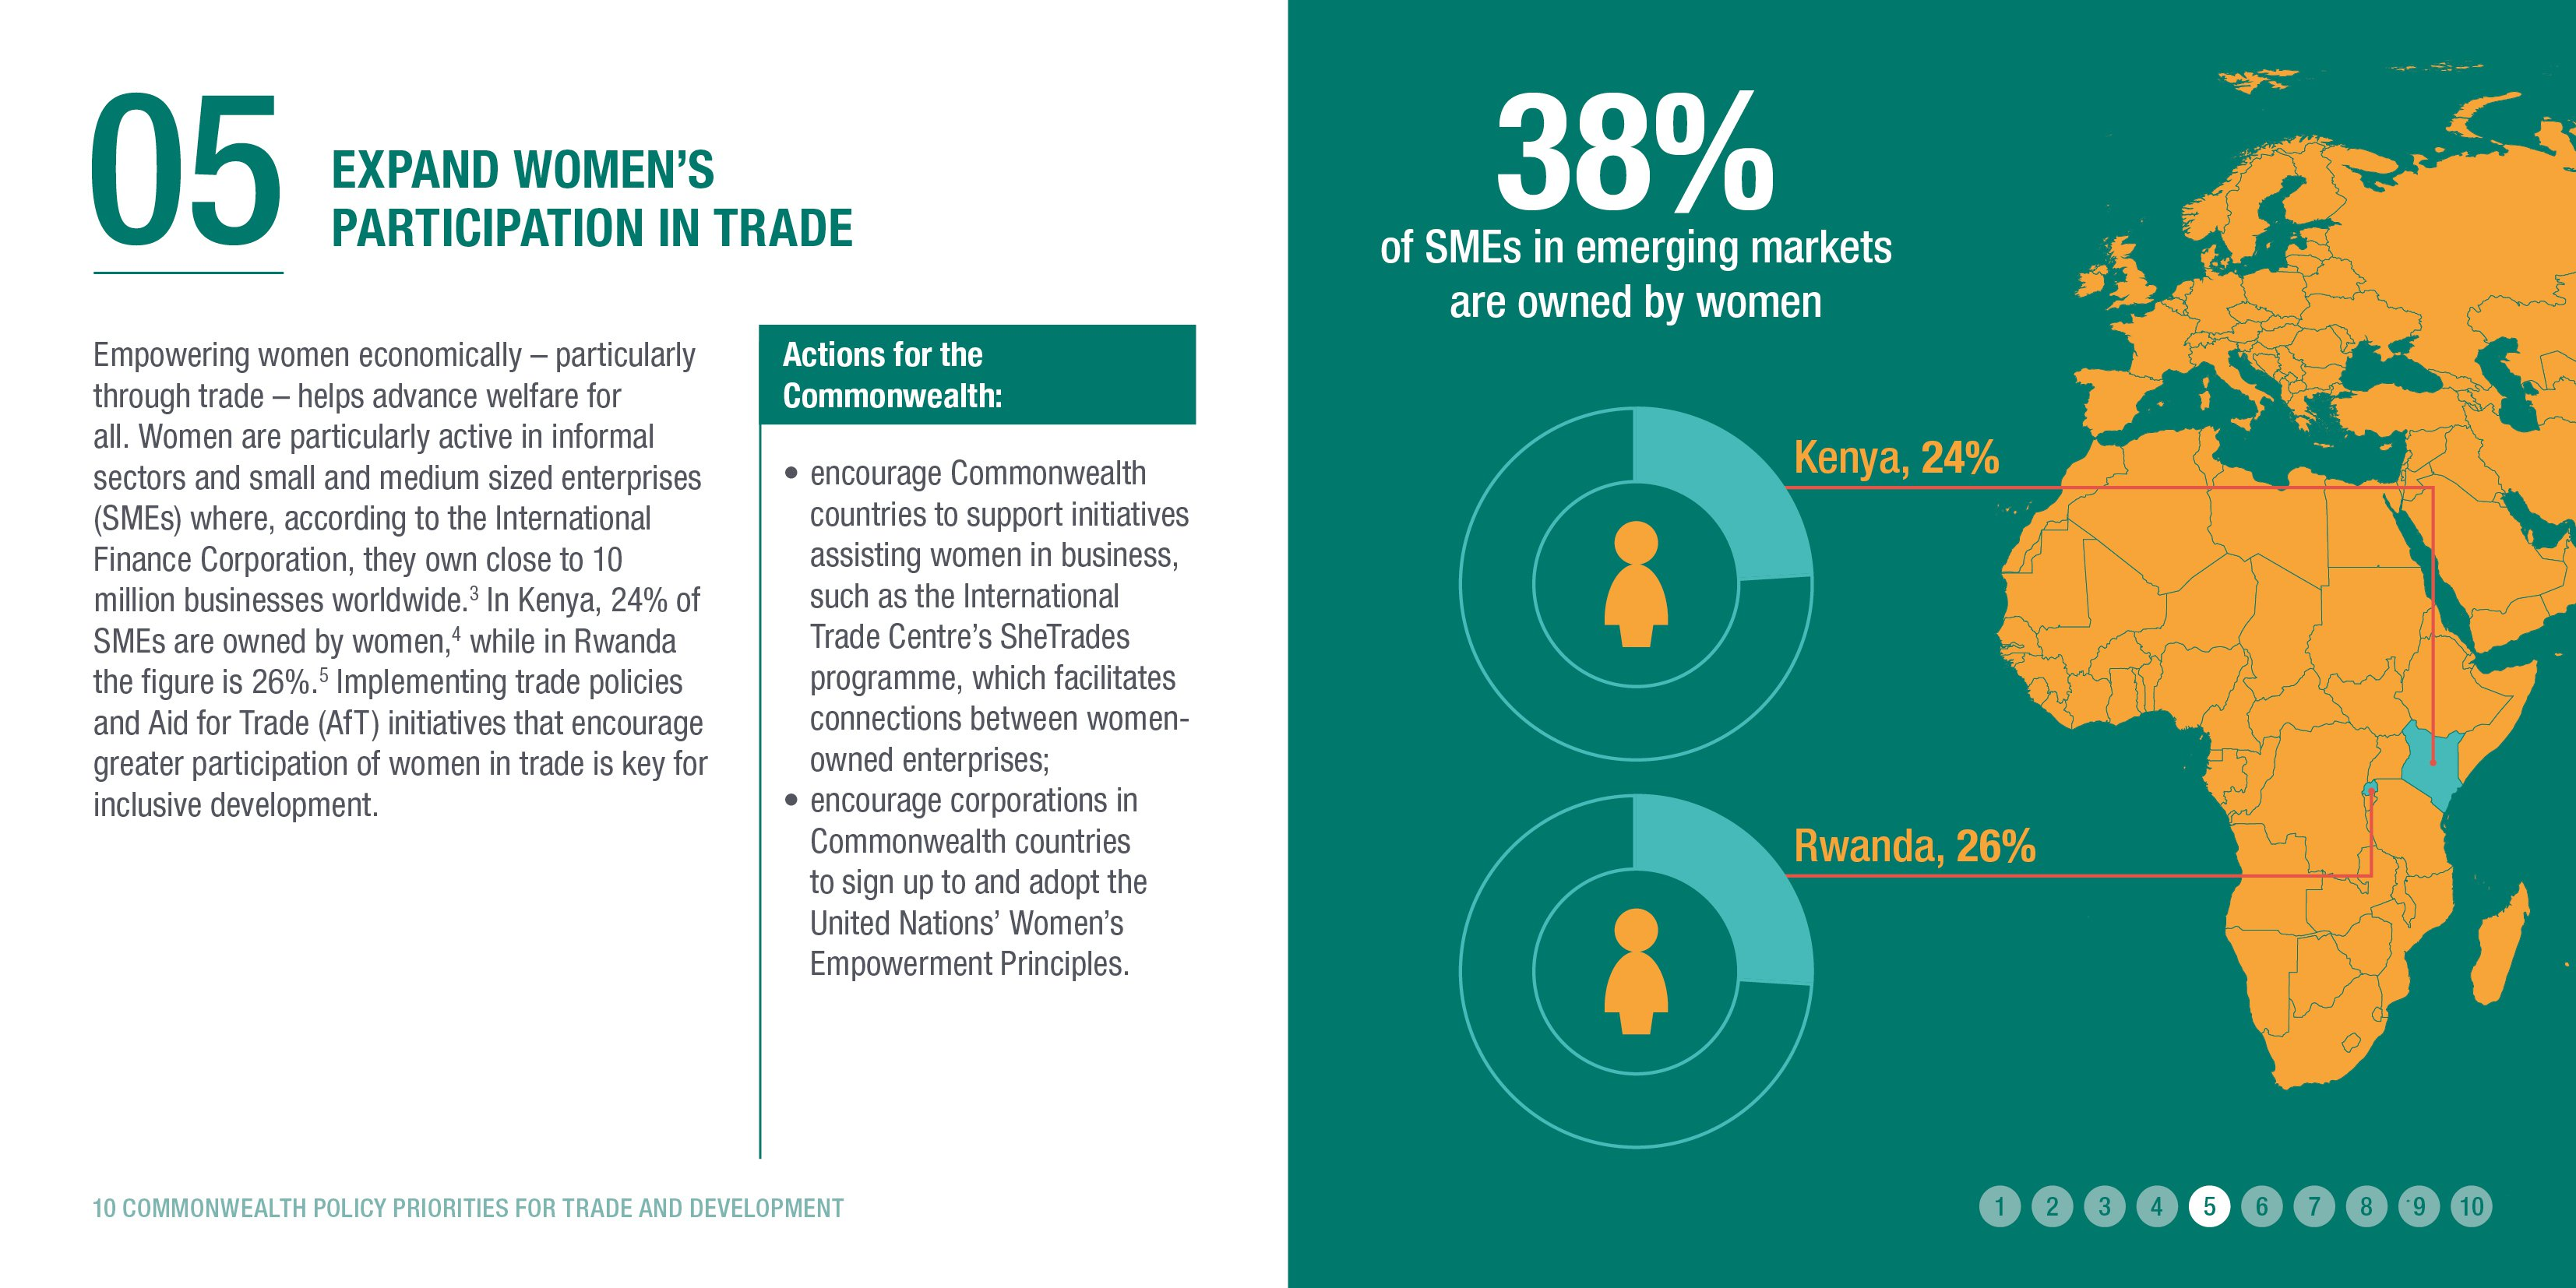 Expand women's participation in trade